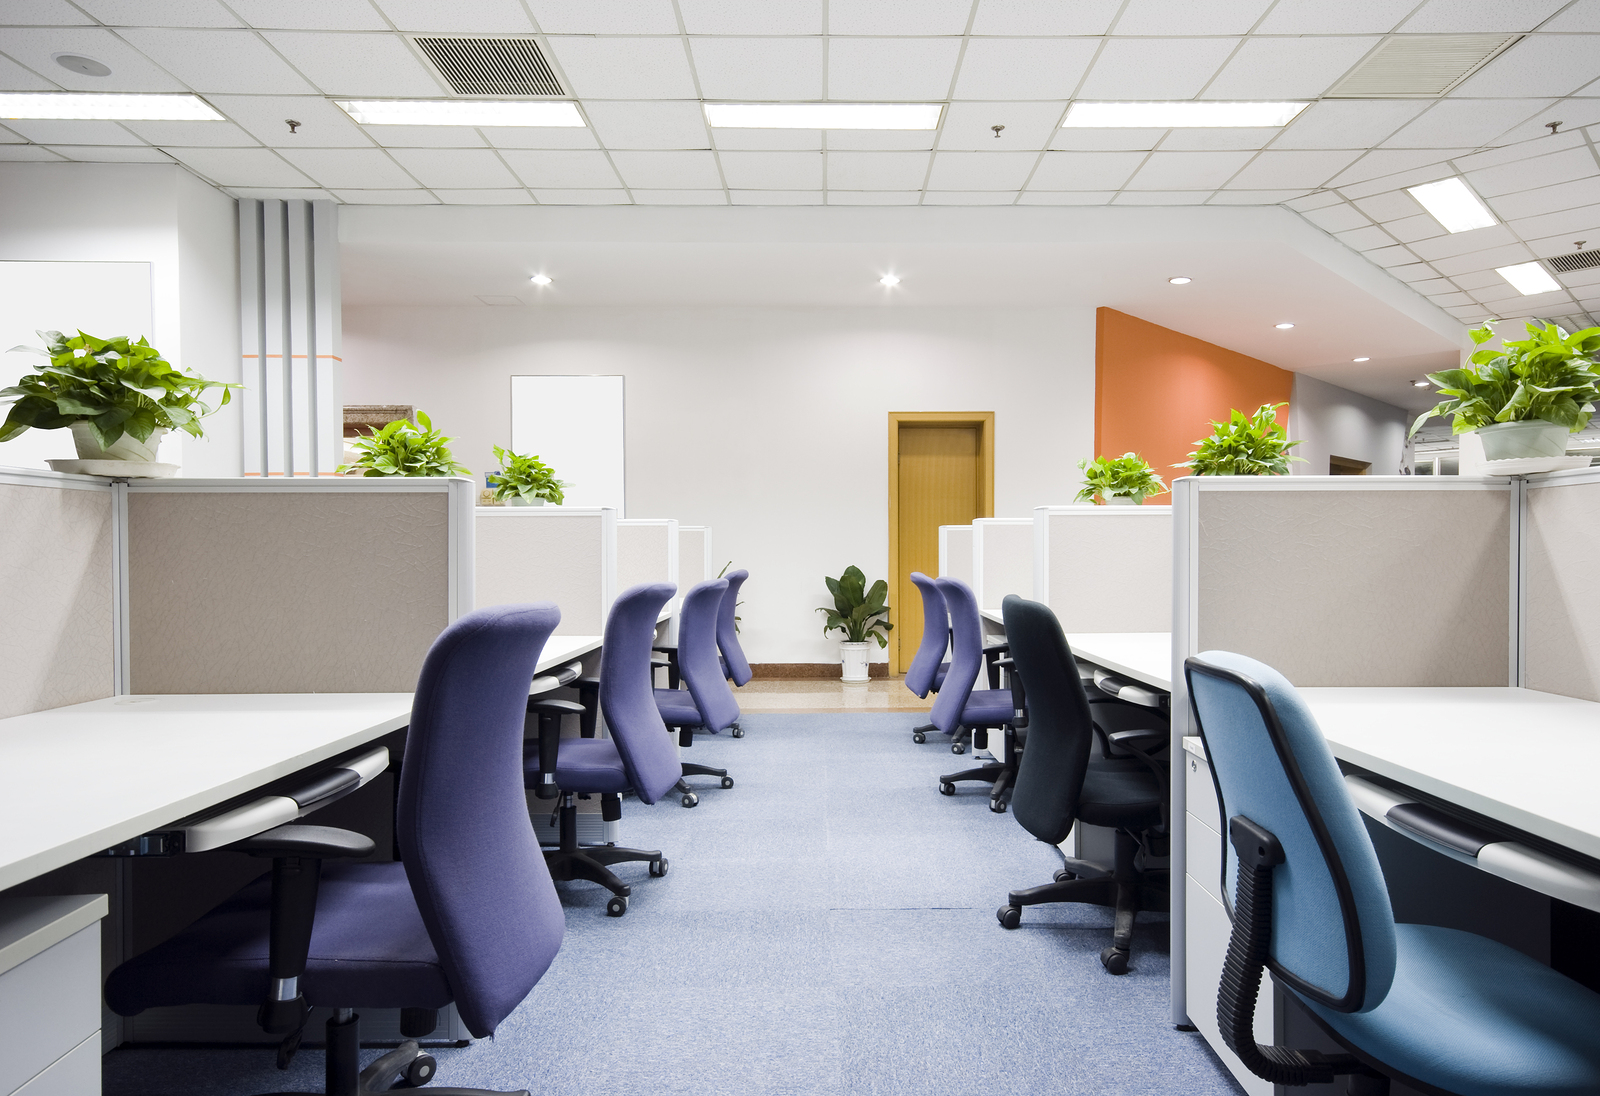 green cleaning results in a modern office with desk and chairs and green plants